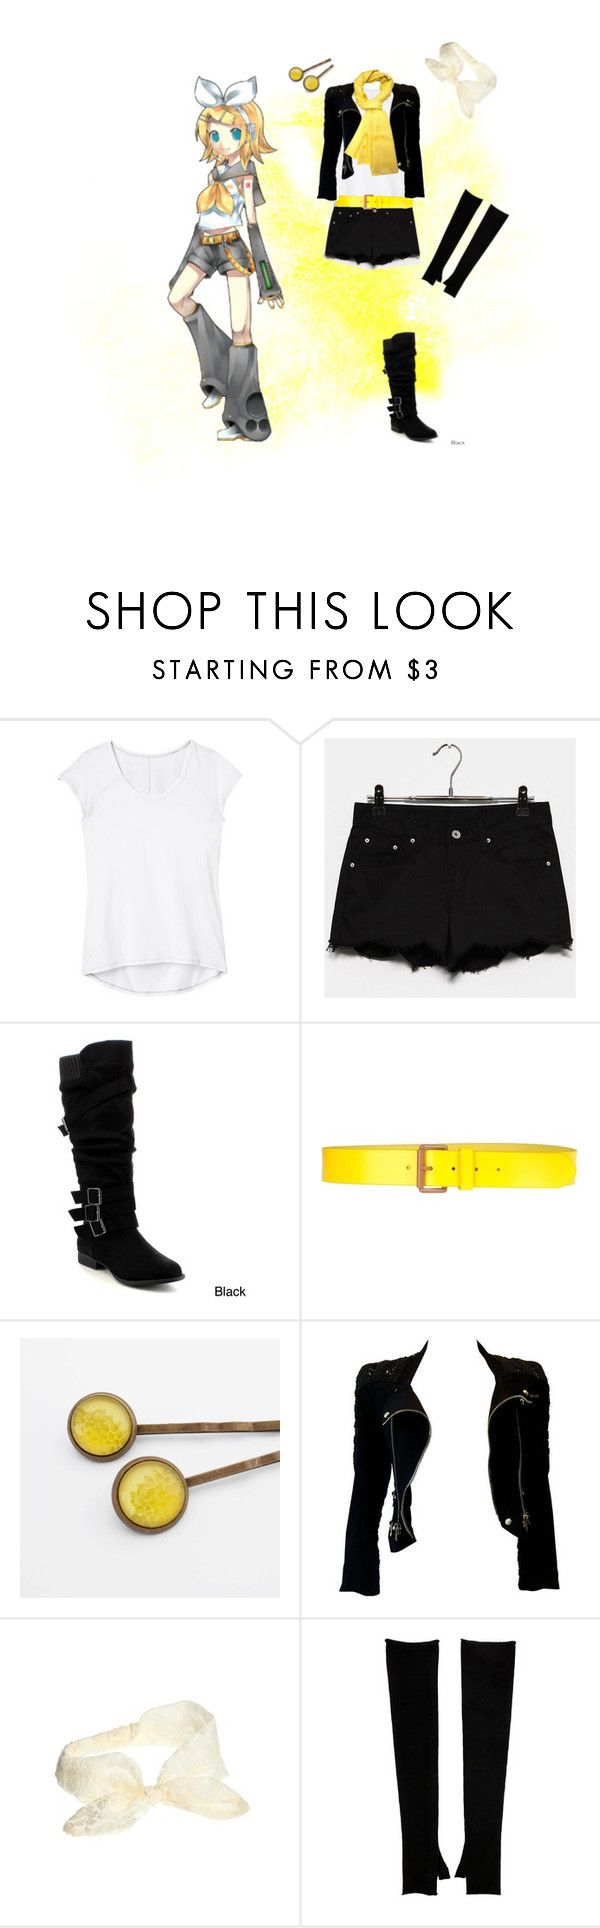 """Rin Kagamine Casual Cosplay, Vocaloid"" by psychometorzi ❤ liked on Polyvore featuring Athleta, Stefanel, Balmain, ASOS, Tory Burch and Denis Colomb"